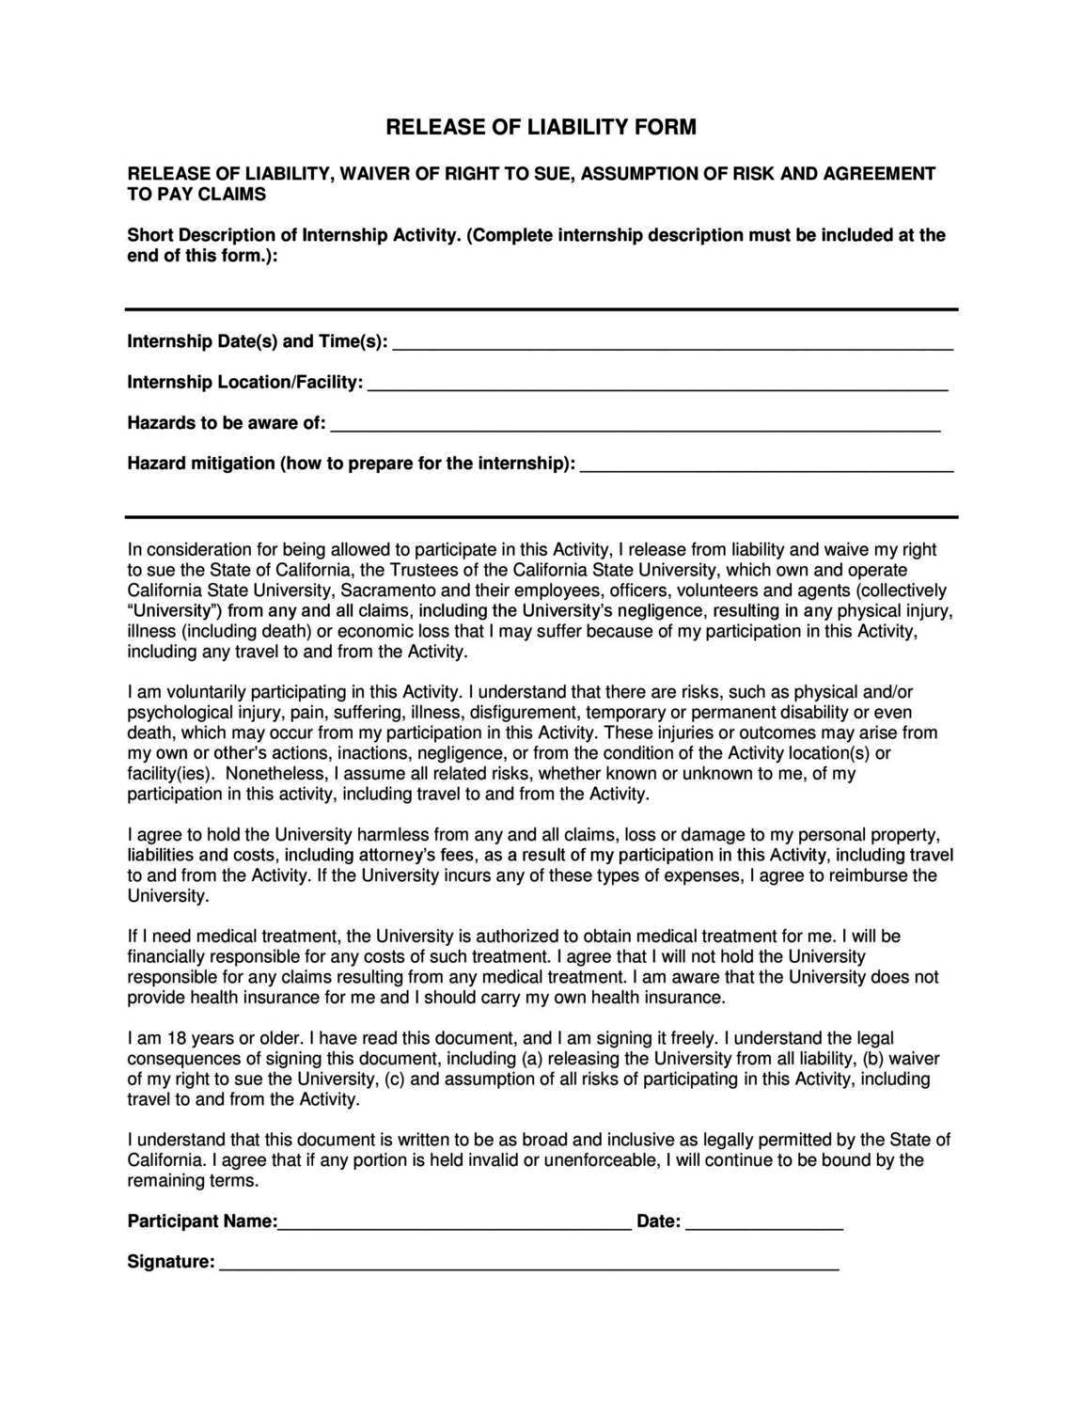 General liability release form template sampletemplatess for Waiver of responsibility template